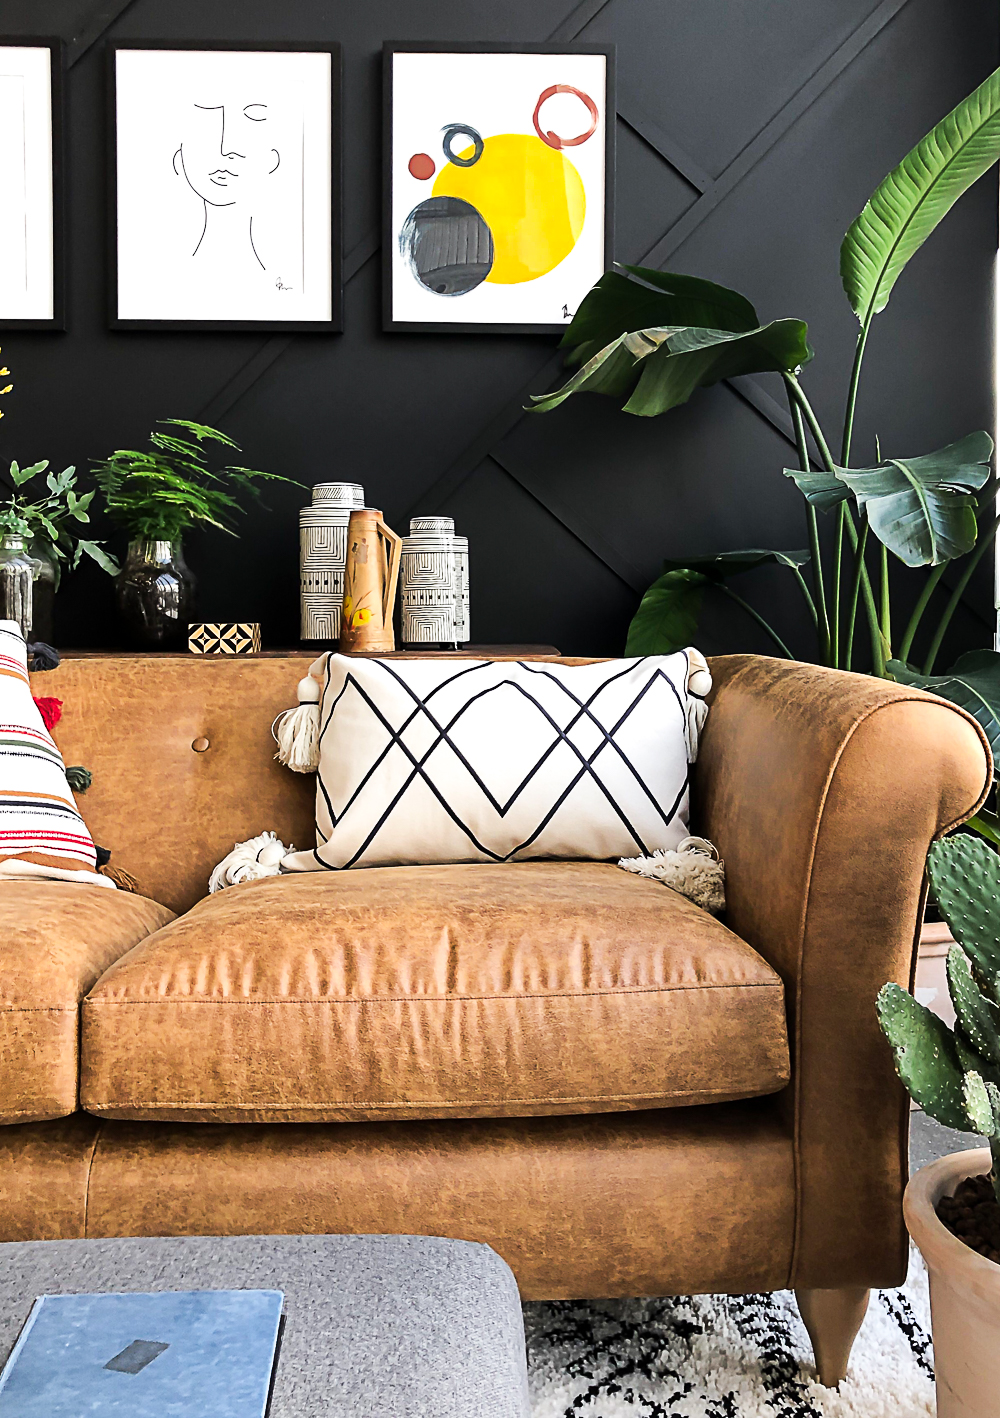 Image of the right side of the leather look ola sofa next to large green plants. Sofa is pictured against a geometric paneled black wall